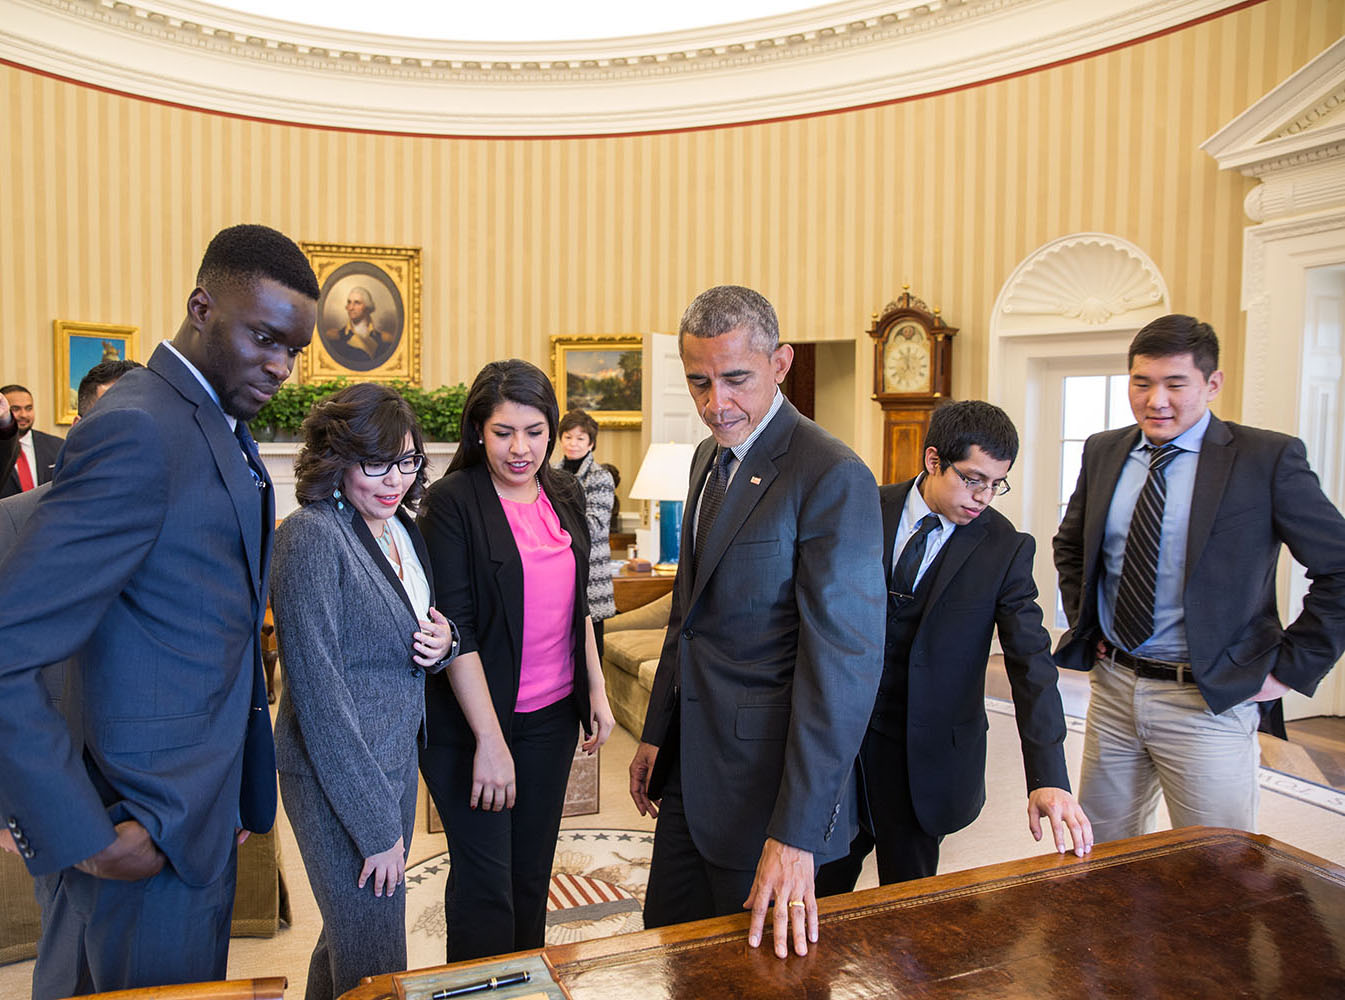 President Barack Obama shows the Resolute Desk to young immigrants while giving them an Oval Office tour. The President met with the group of DREAMers, who talked about how they have benefited from Deferred Action for Childhood Arrivals, Feb. 4, 2015. (Official White House Photo by Pete Souza)